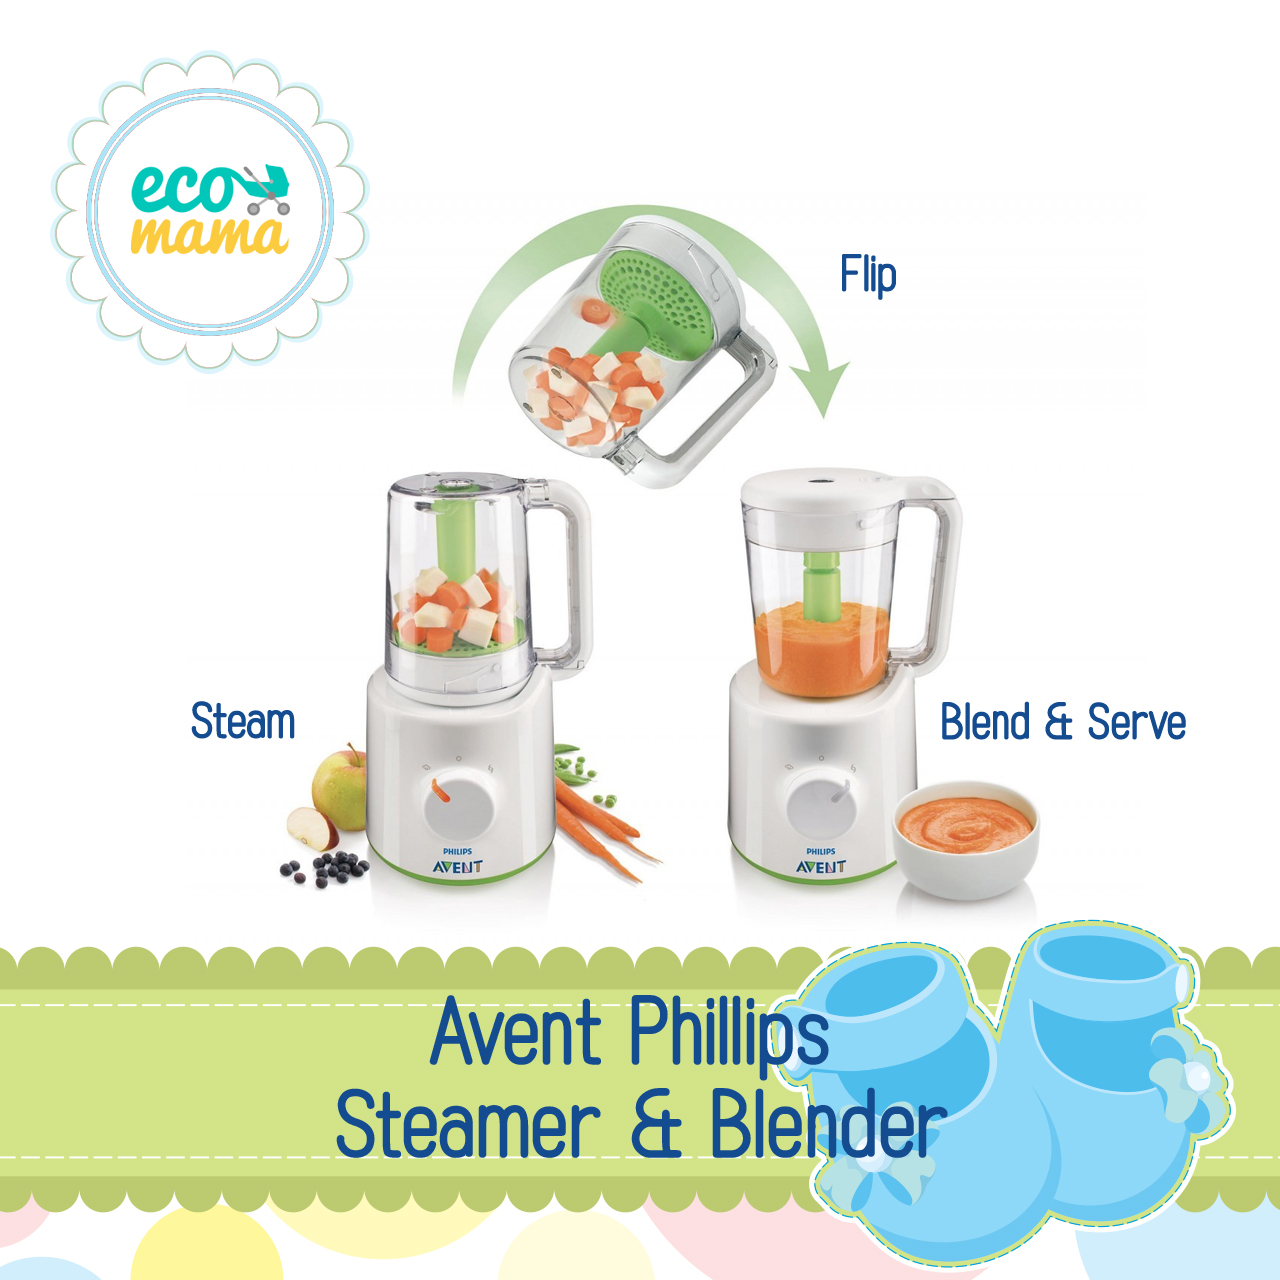 Avent Philips Steamer and Blender